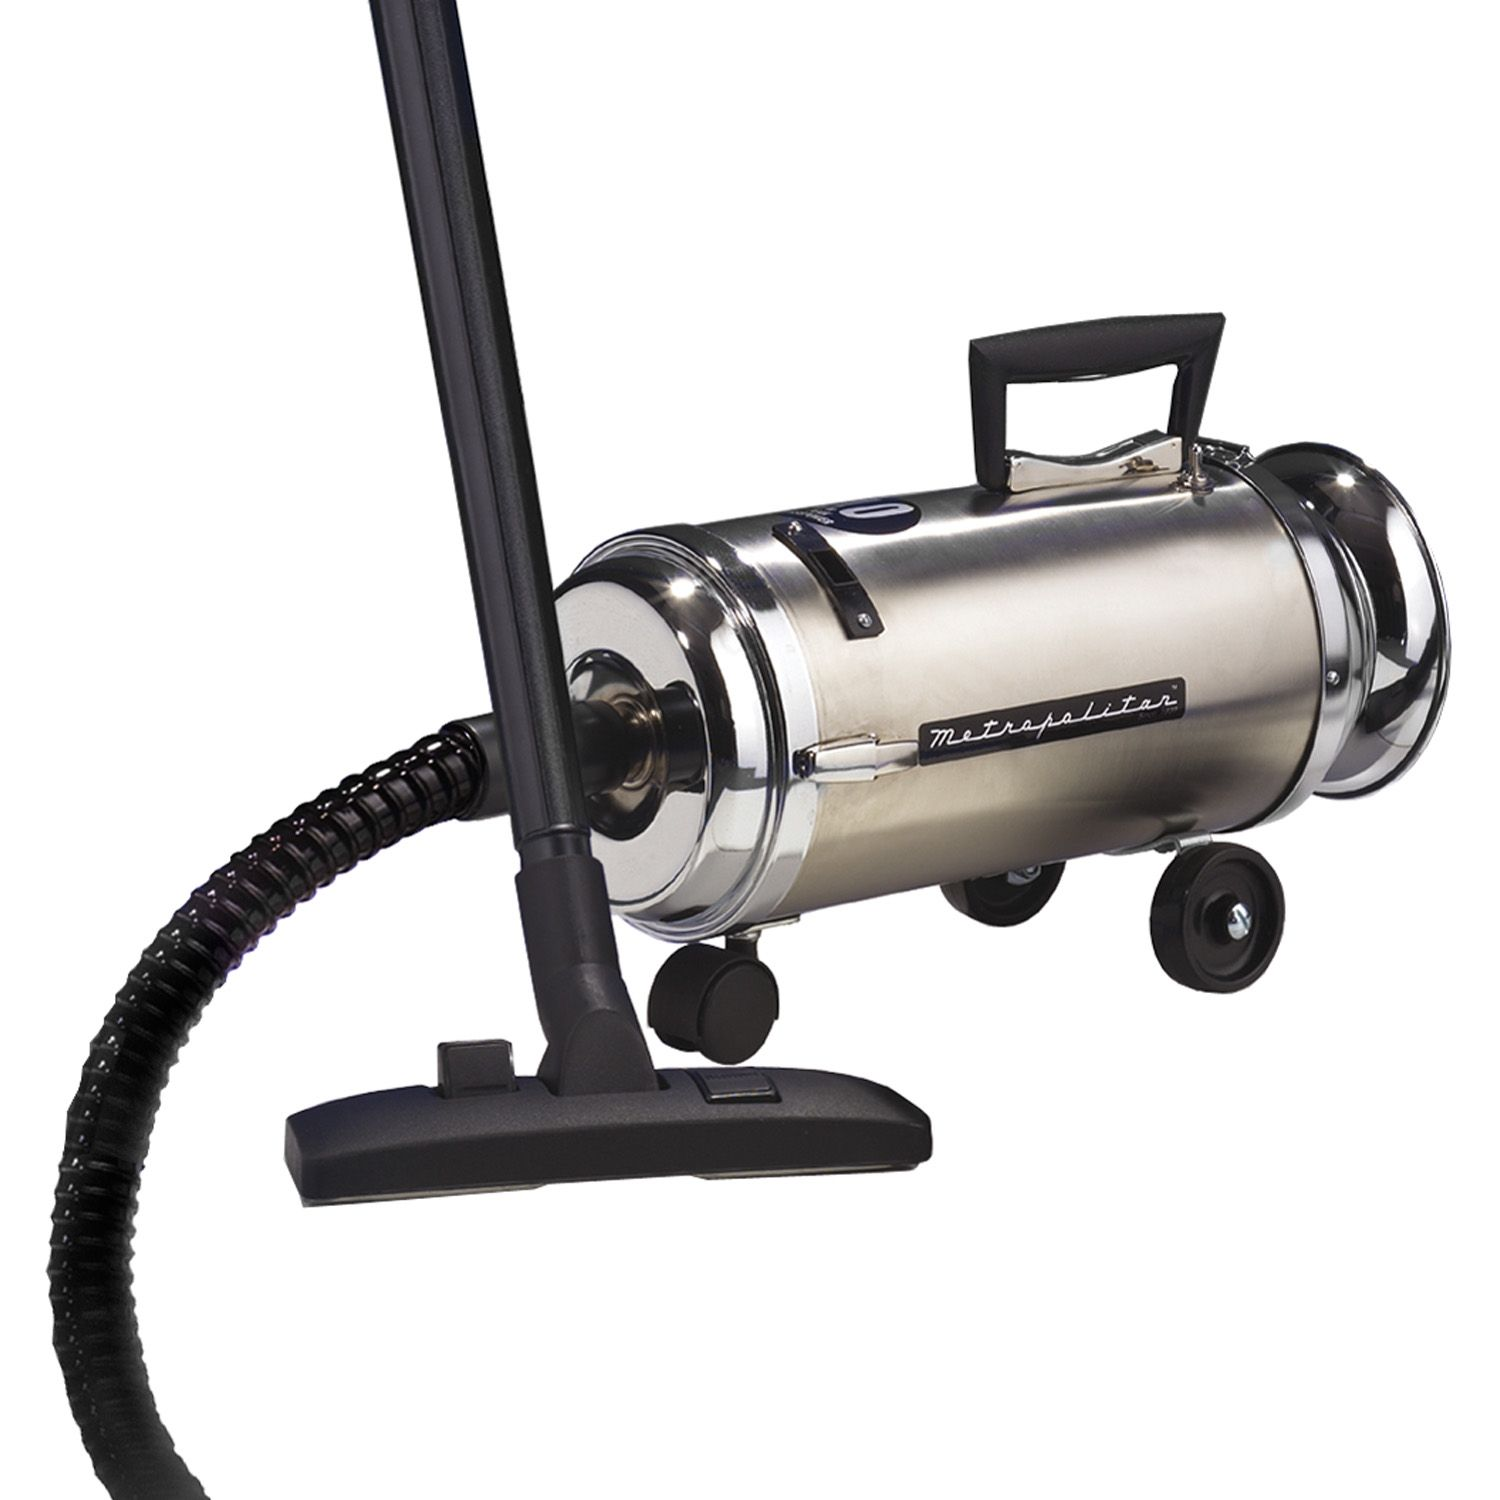 Metro Mini Canister with Hepa Filter Vacuum Cleaner 327